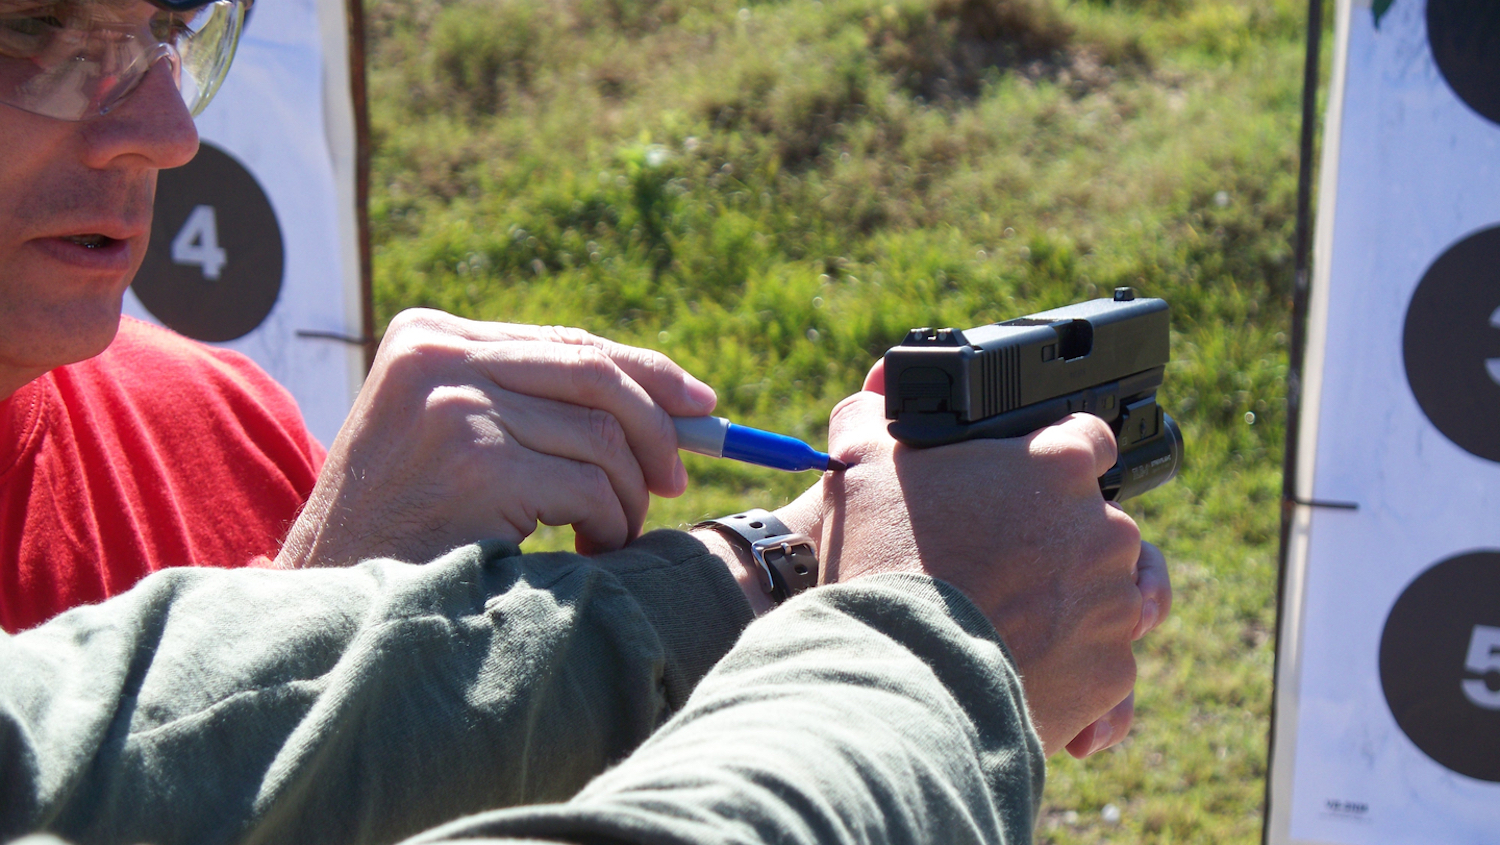 Connecticut-Based NRA Instructors Offering Free Training to Educators